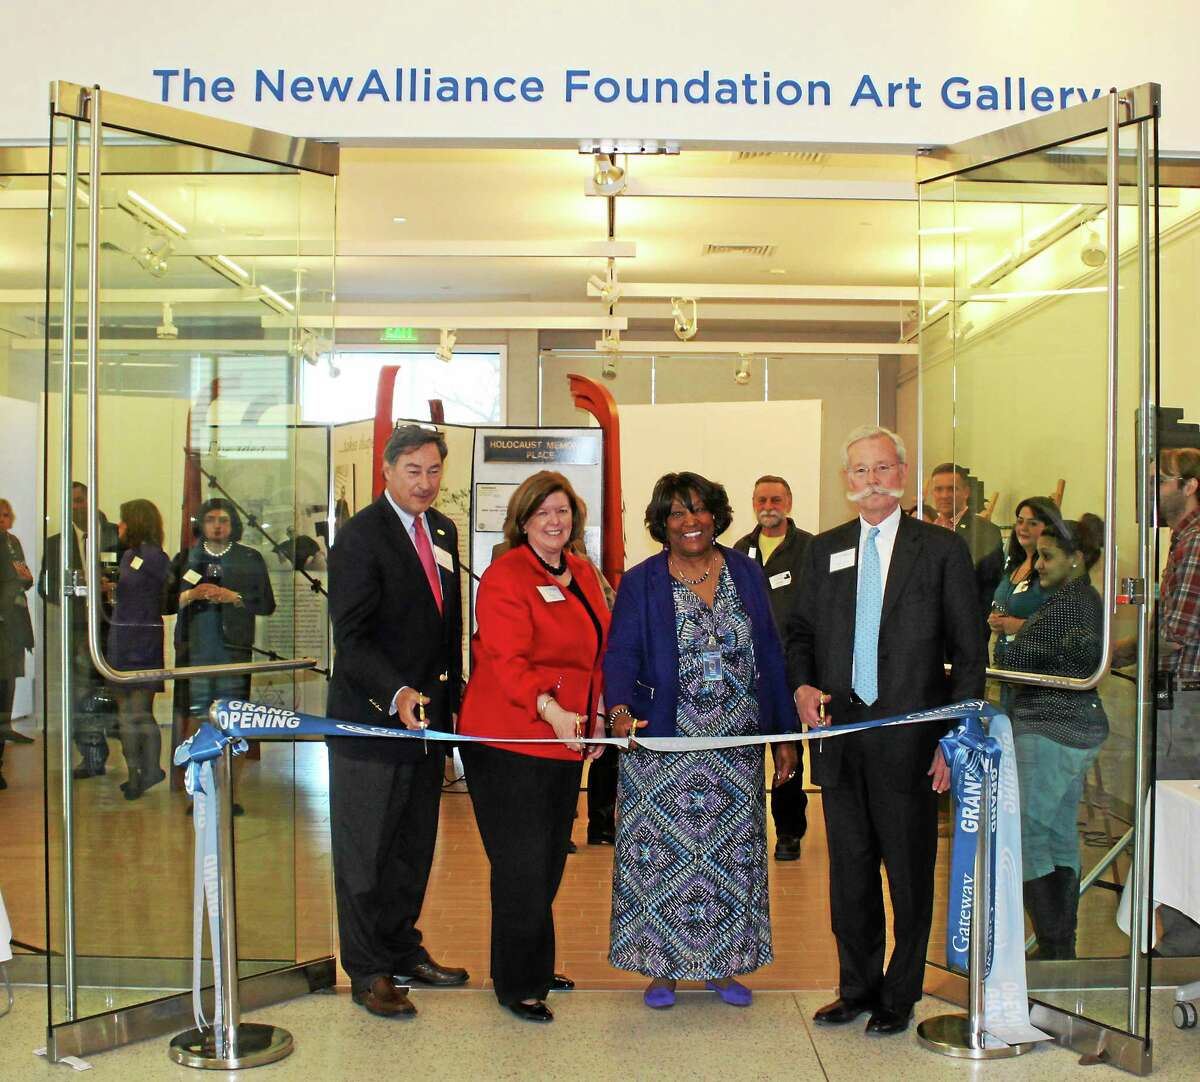 The Gateway Community College Foundation celebrates the official naming of the NewAlliance Foundation Art Gallery with the opening of the Memory and Legacy Holocaust Memorial Exhibit. Pictured, L to R: GCC Foundation Board Chair, Thomas Griggs Jr., Kim Healey, Executive Director of the NewAlliance Foundation, GCC President, Dorsey Kendrick, and NewAlliance Foundation Board Chair, Robert J. Lyons.